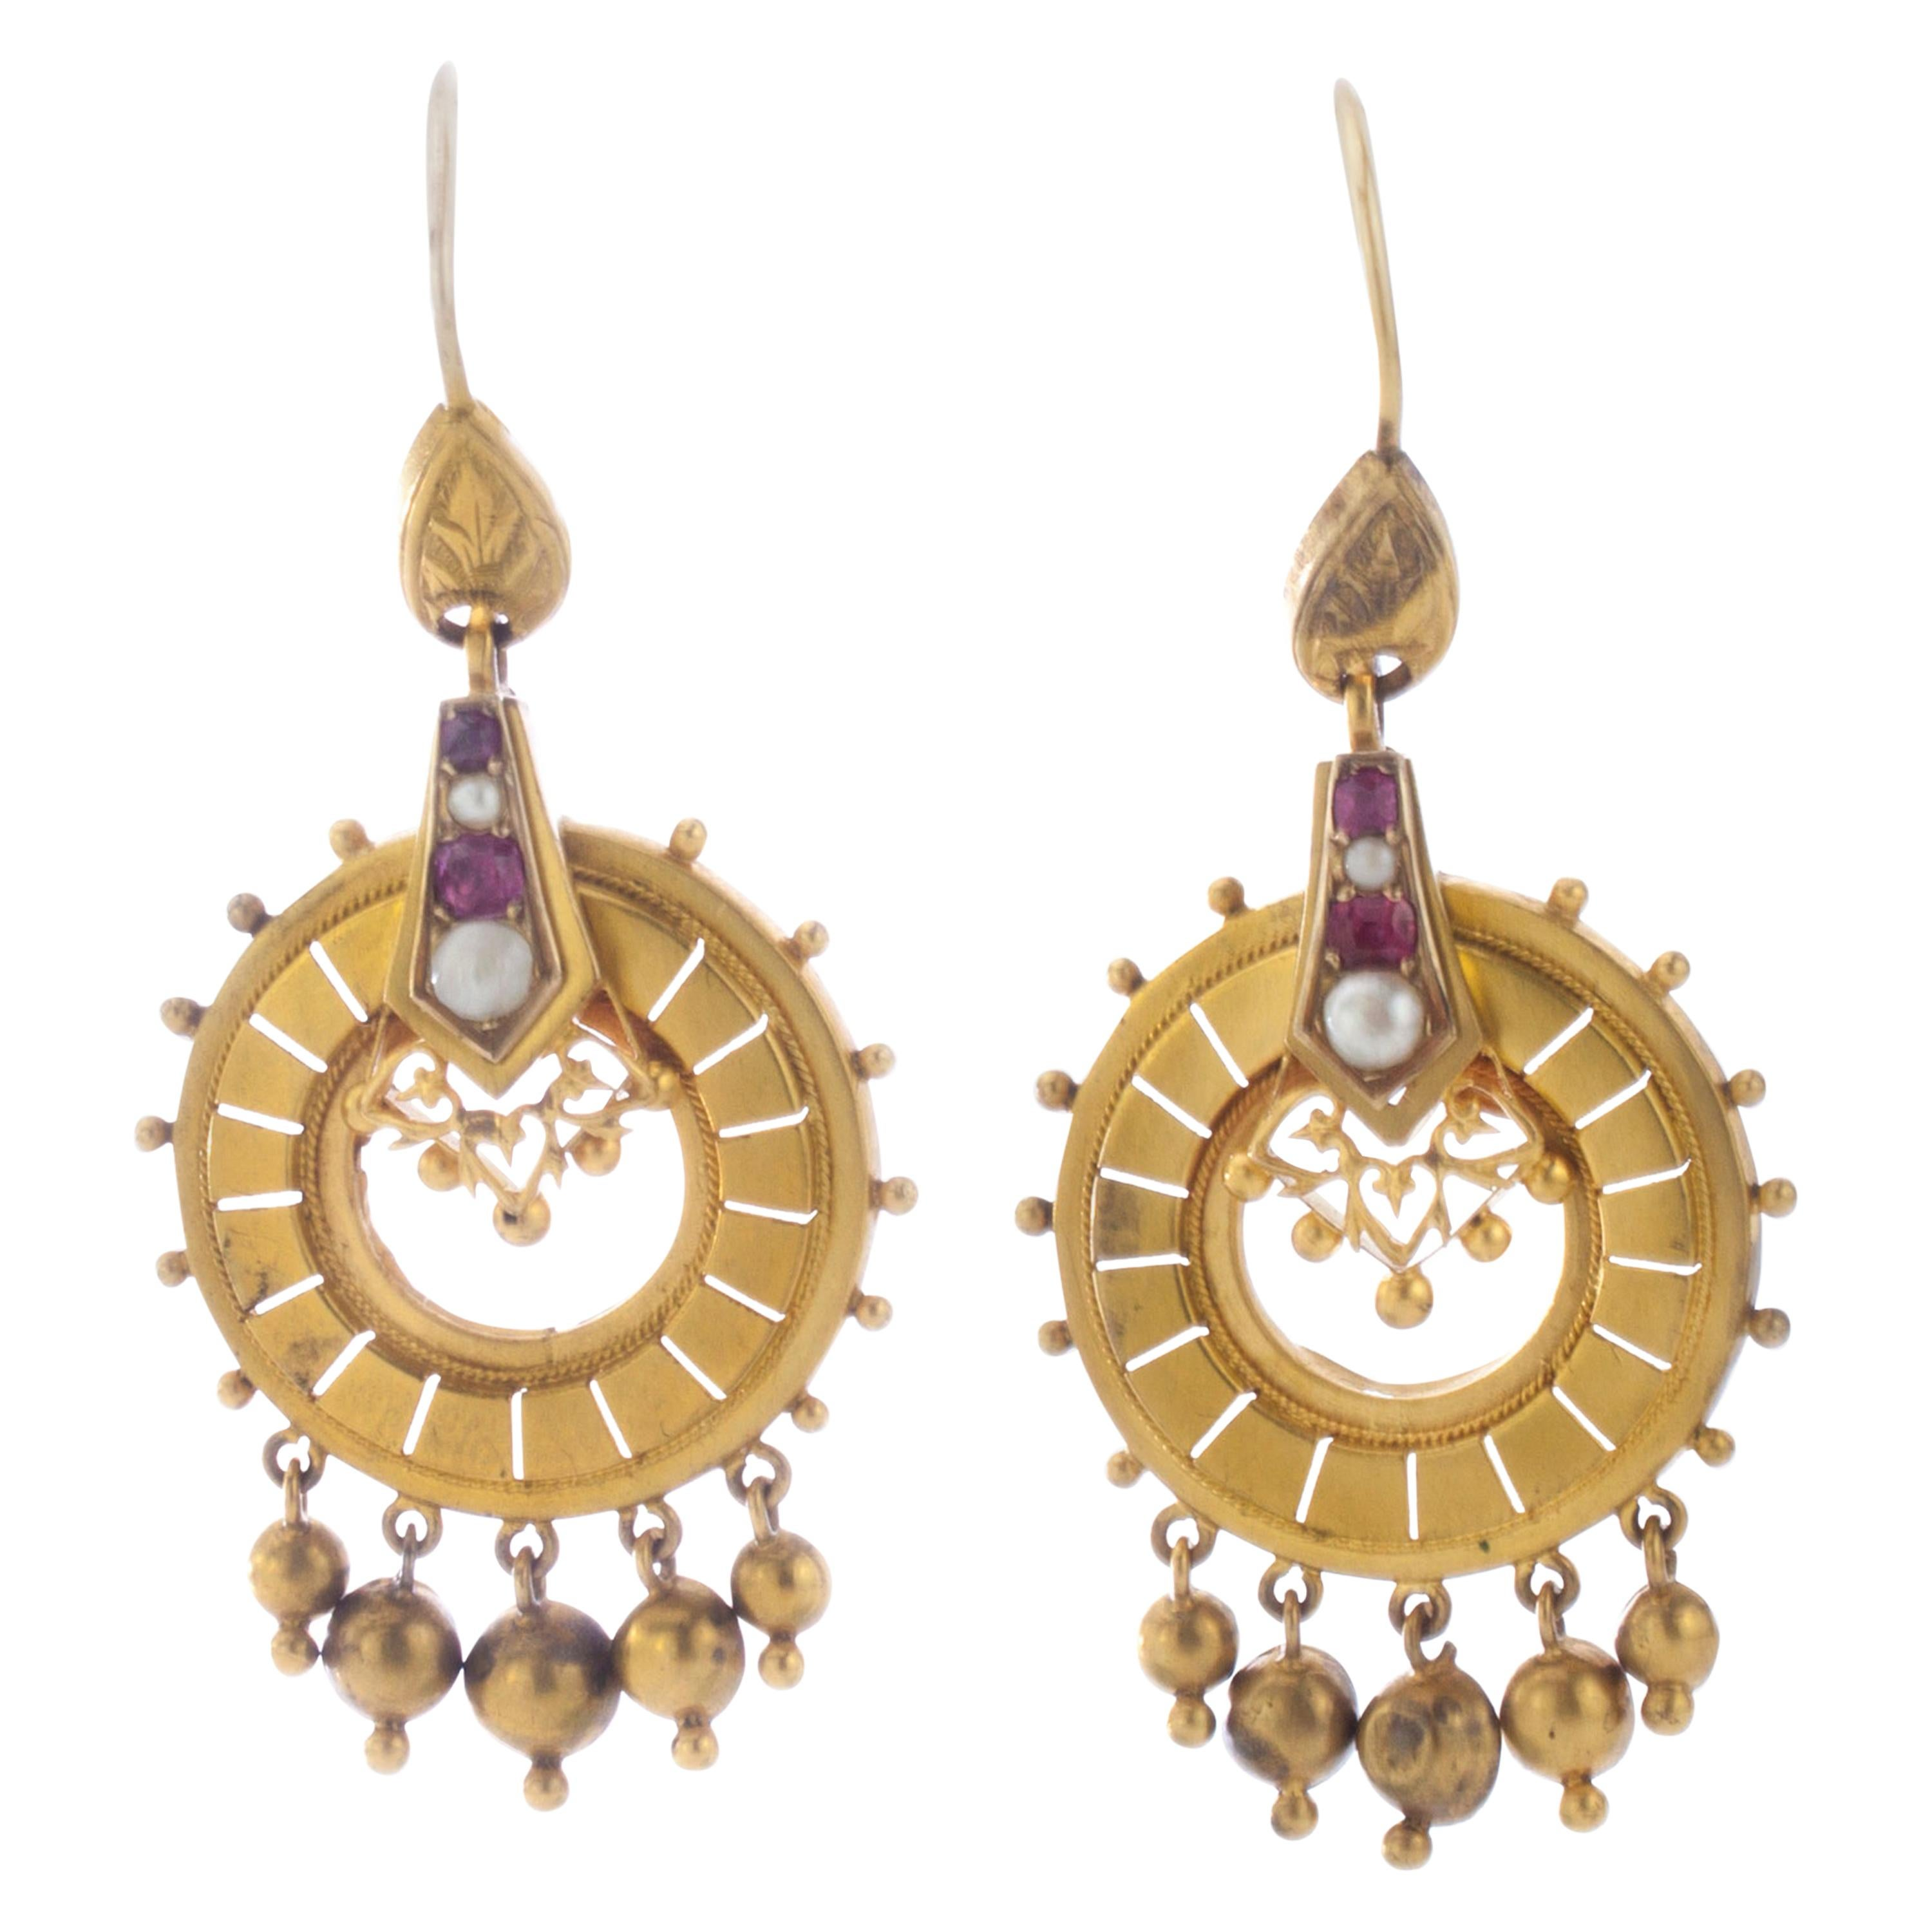 Antique Victorian 15 Karat Yellow Gold Dangle Earrings with Pearls and Rubies